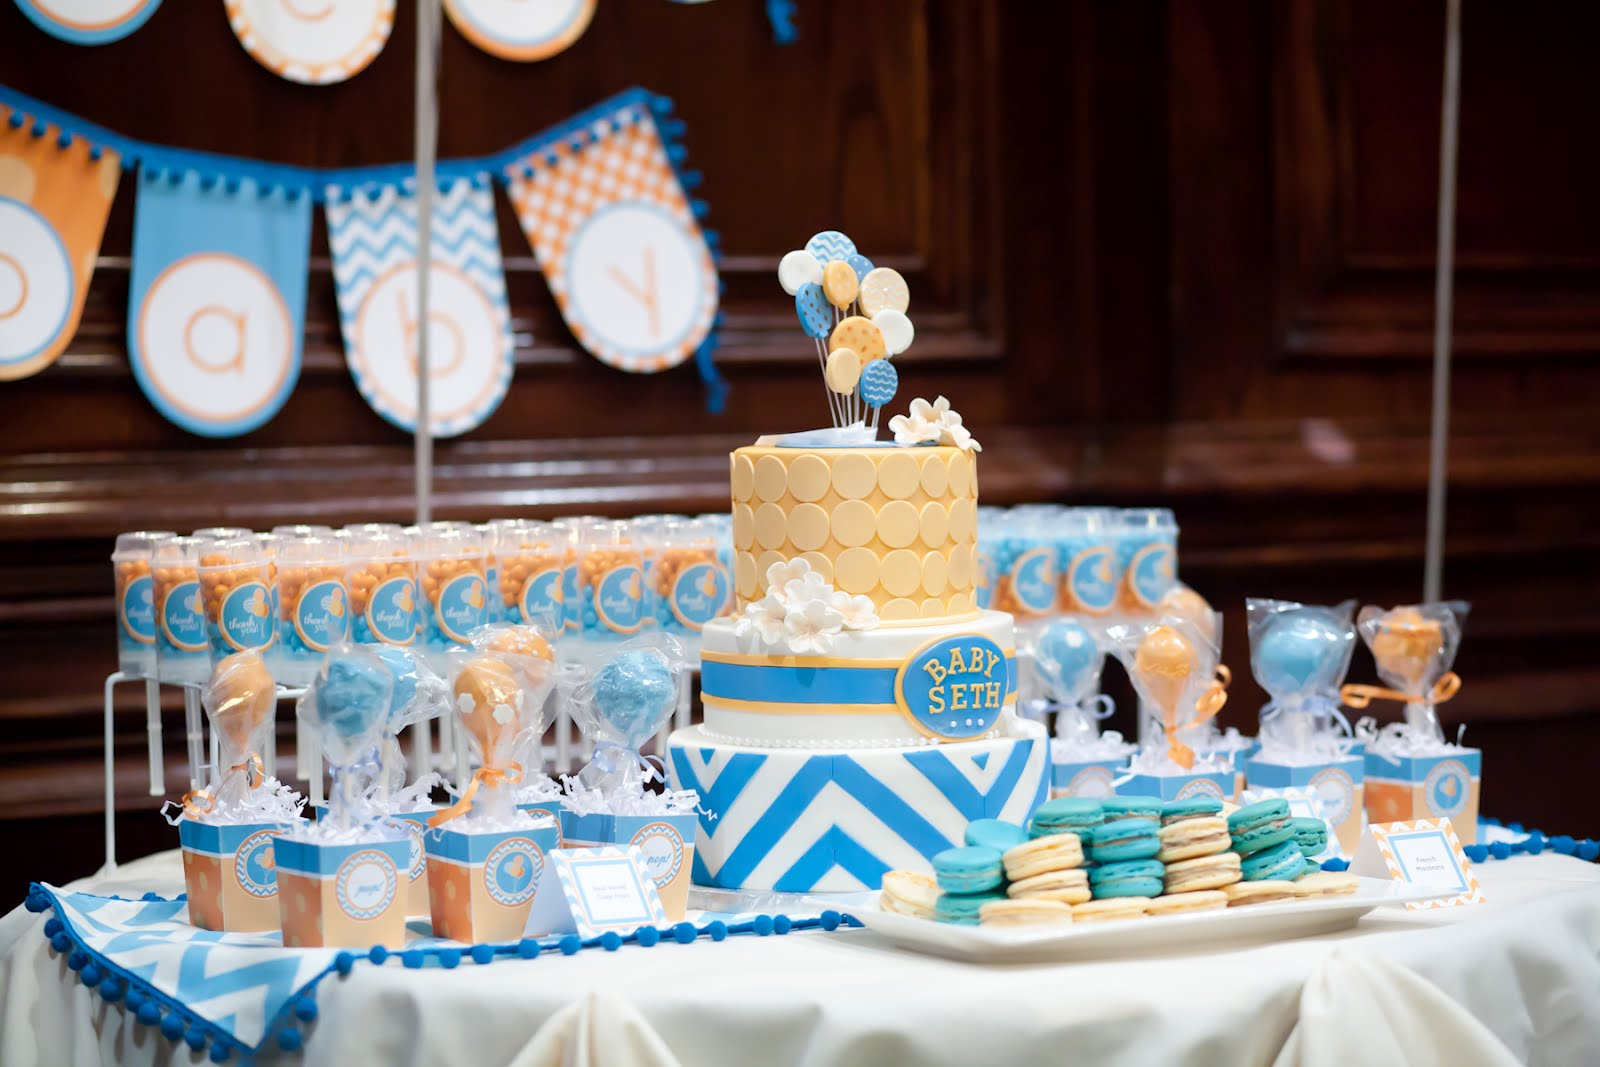 Fabulous Baby Shower Dessert Table 1600 x 1067 · 170 kB · jpeg